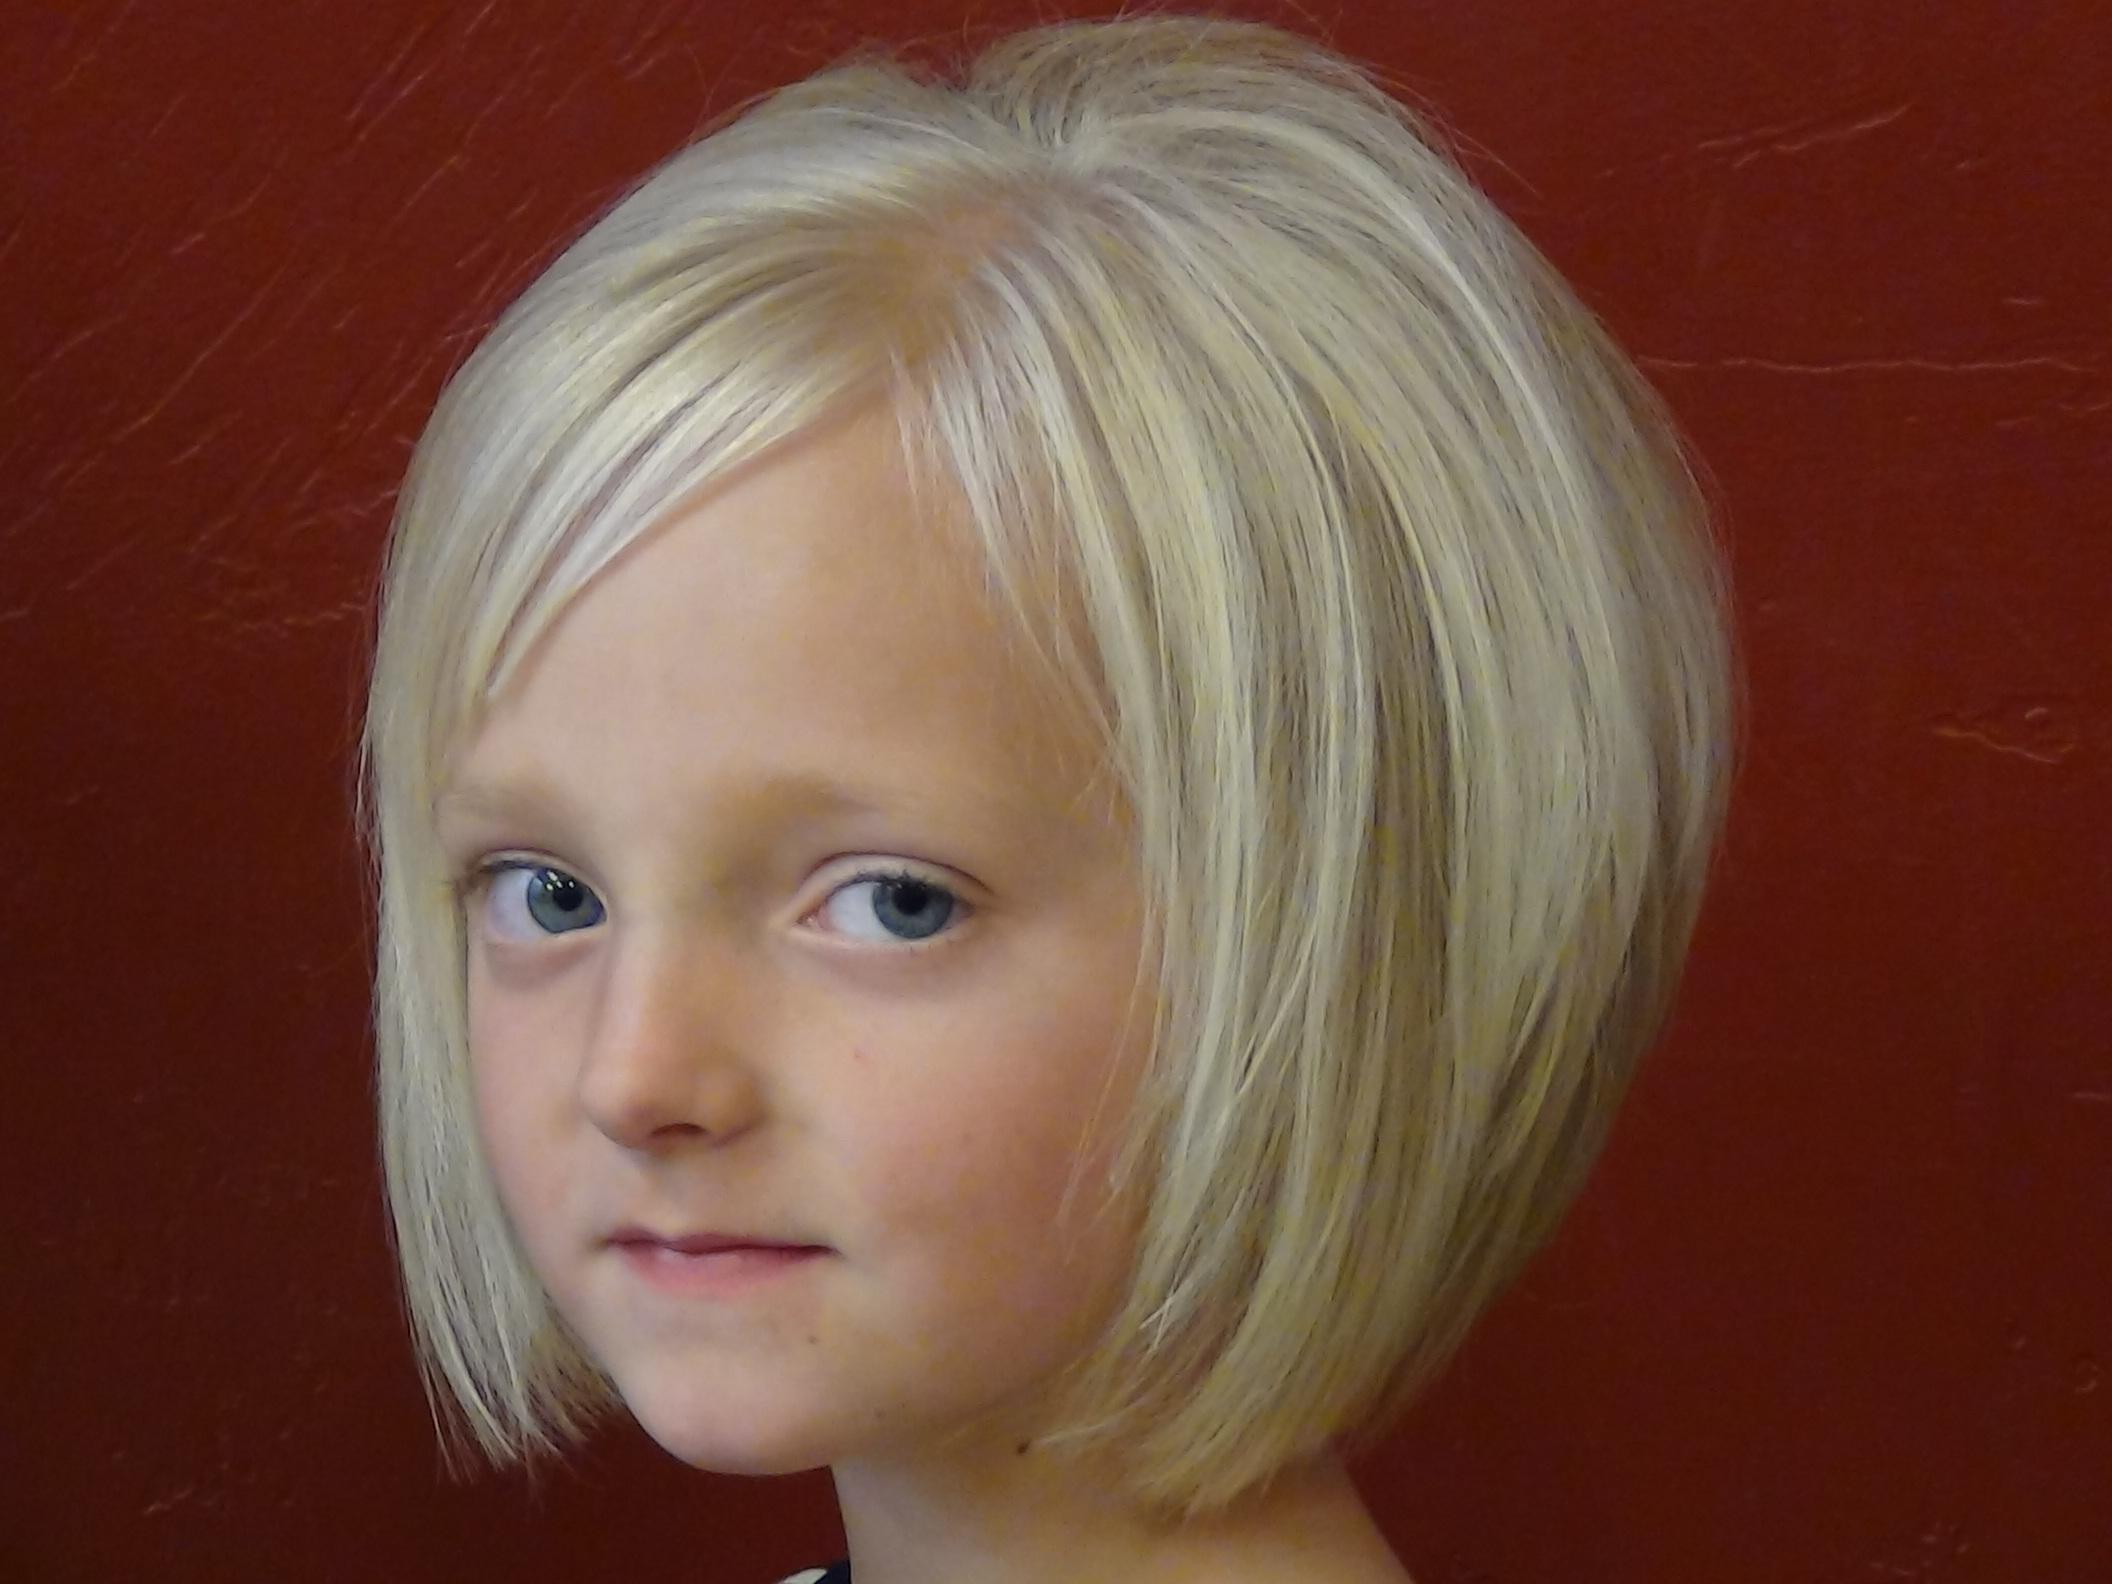 Incoming Calls Short Haircuts For Girls Little